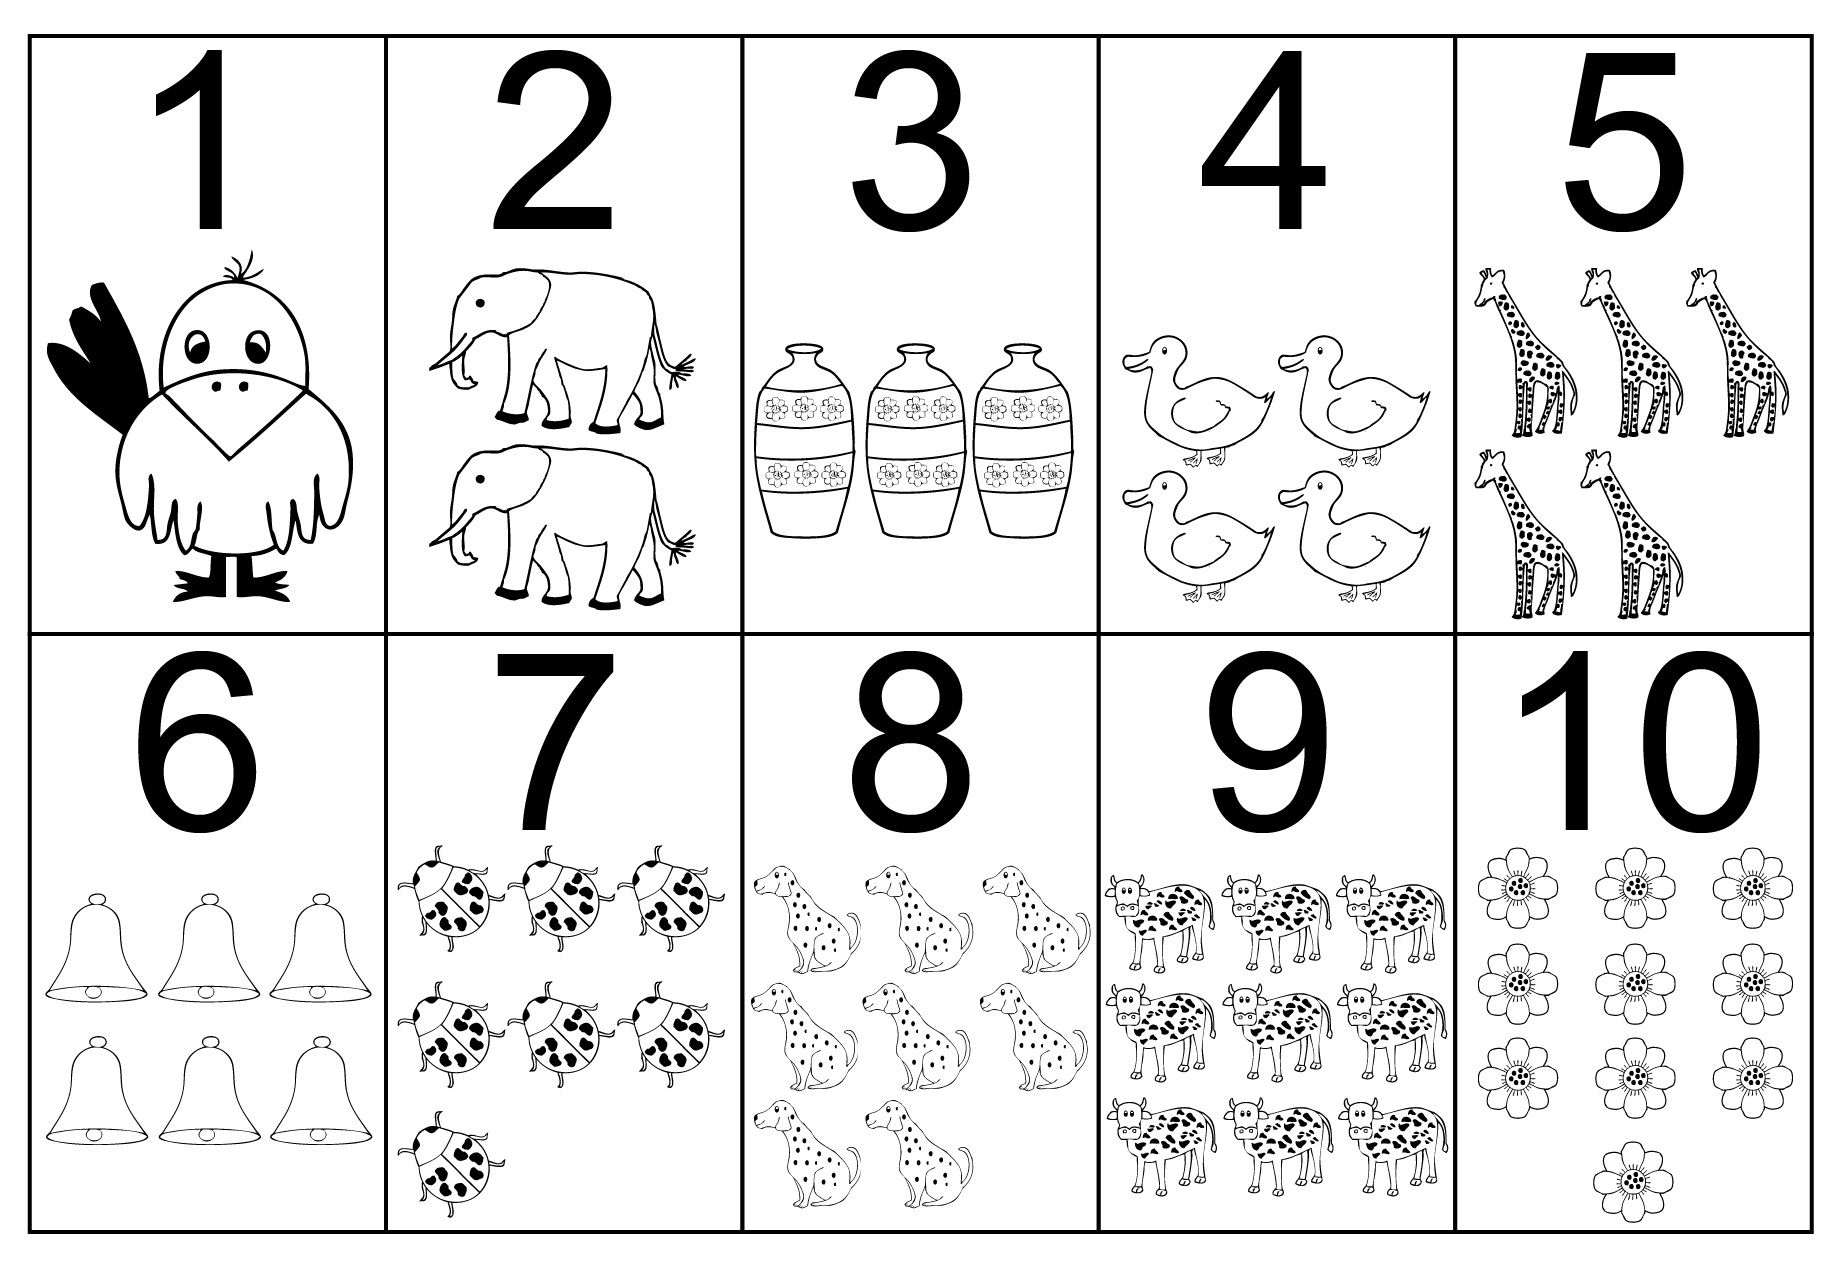 Easy Number Coloring Pages Ideas For Toddlers